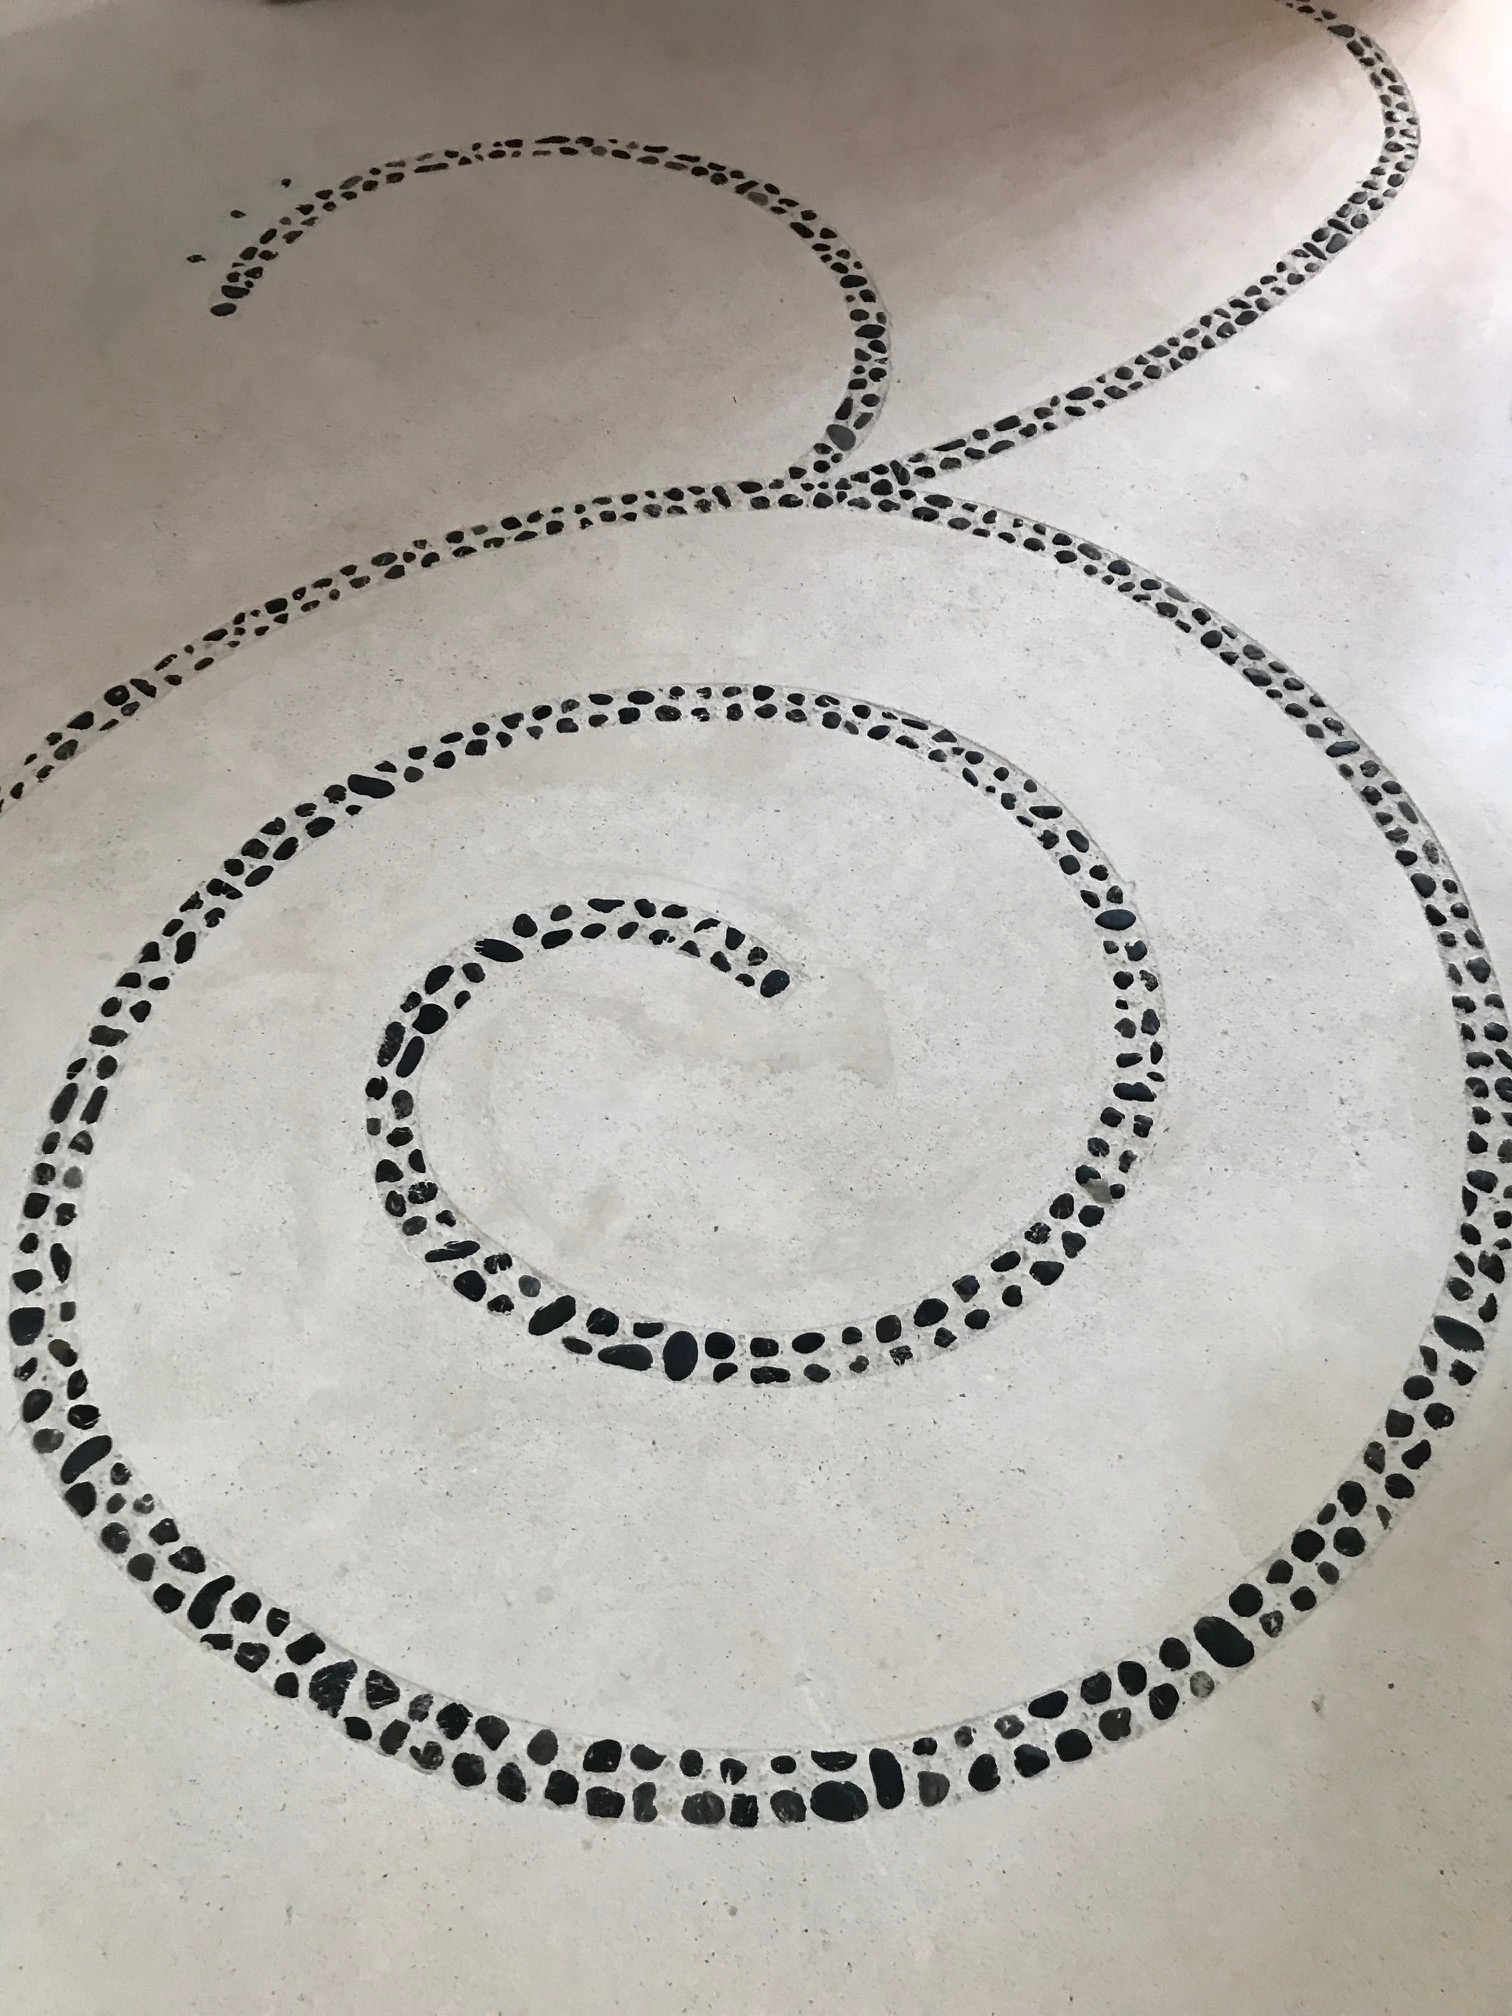 Spiral Patterned Floor, Mahekal Resort, Mexico